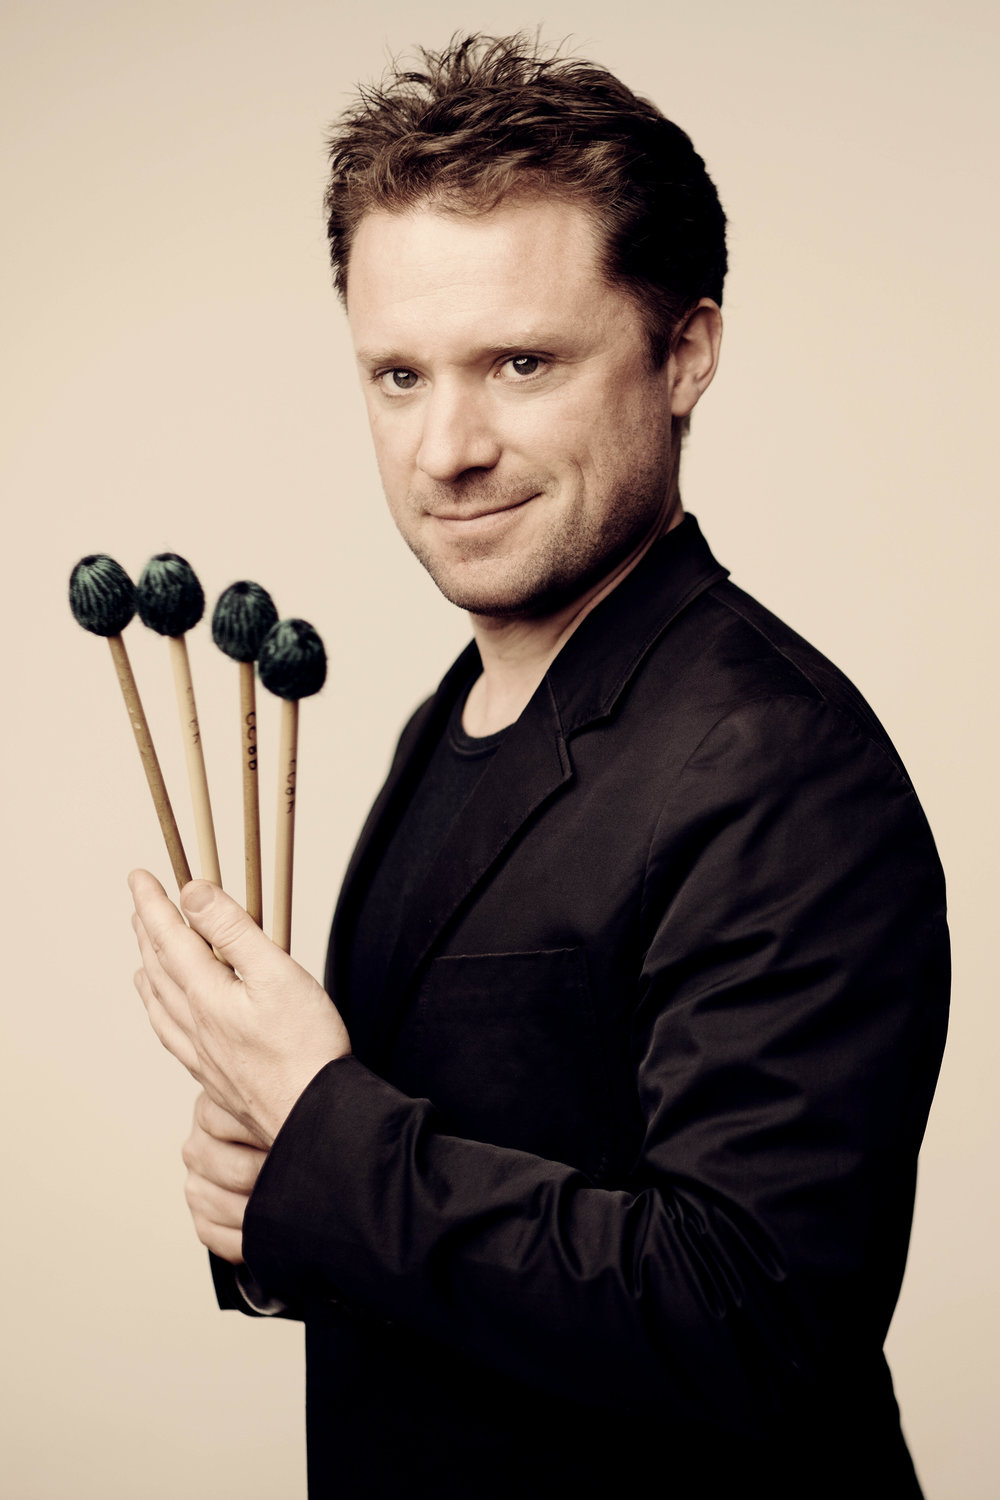 Colin Currie, Percussion